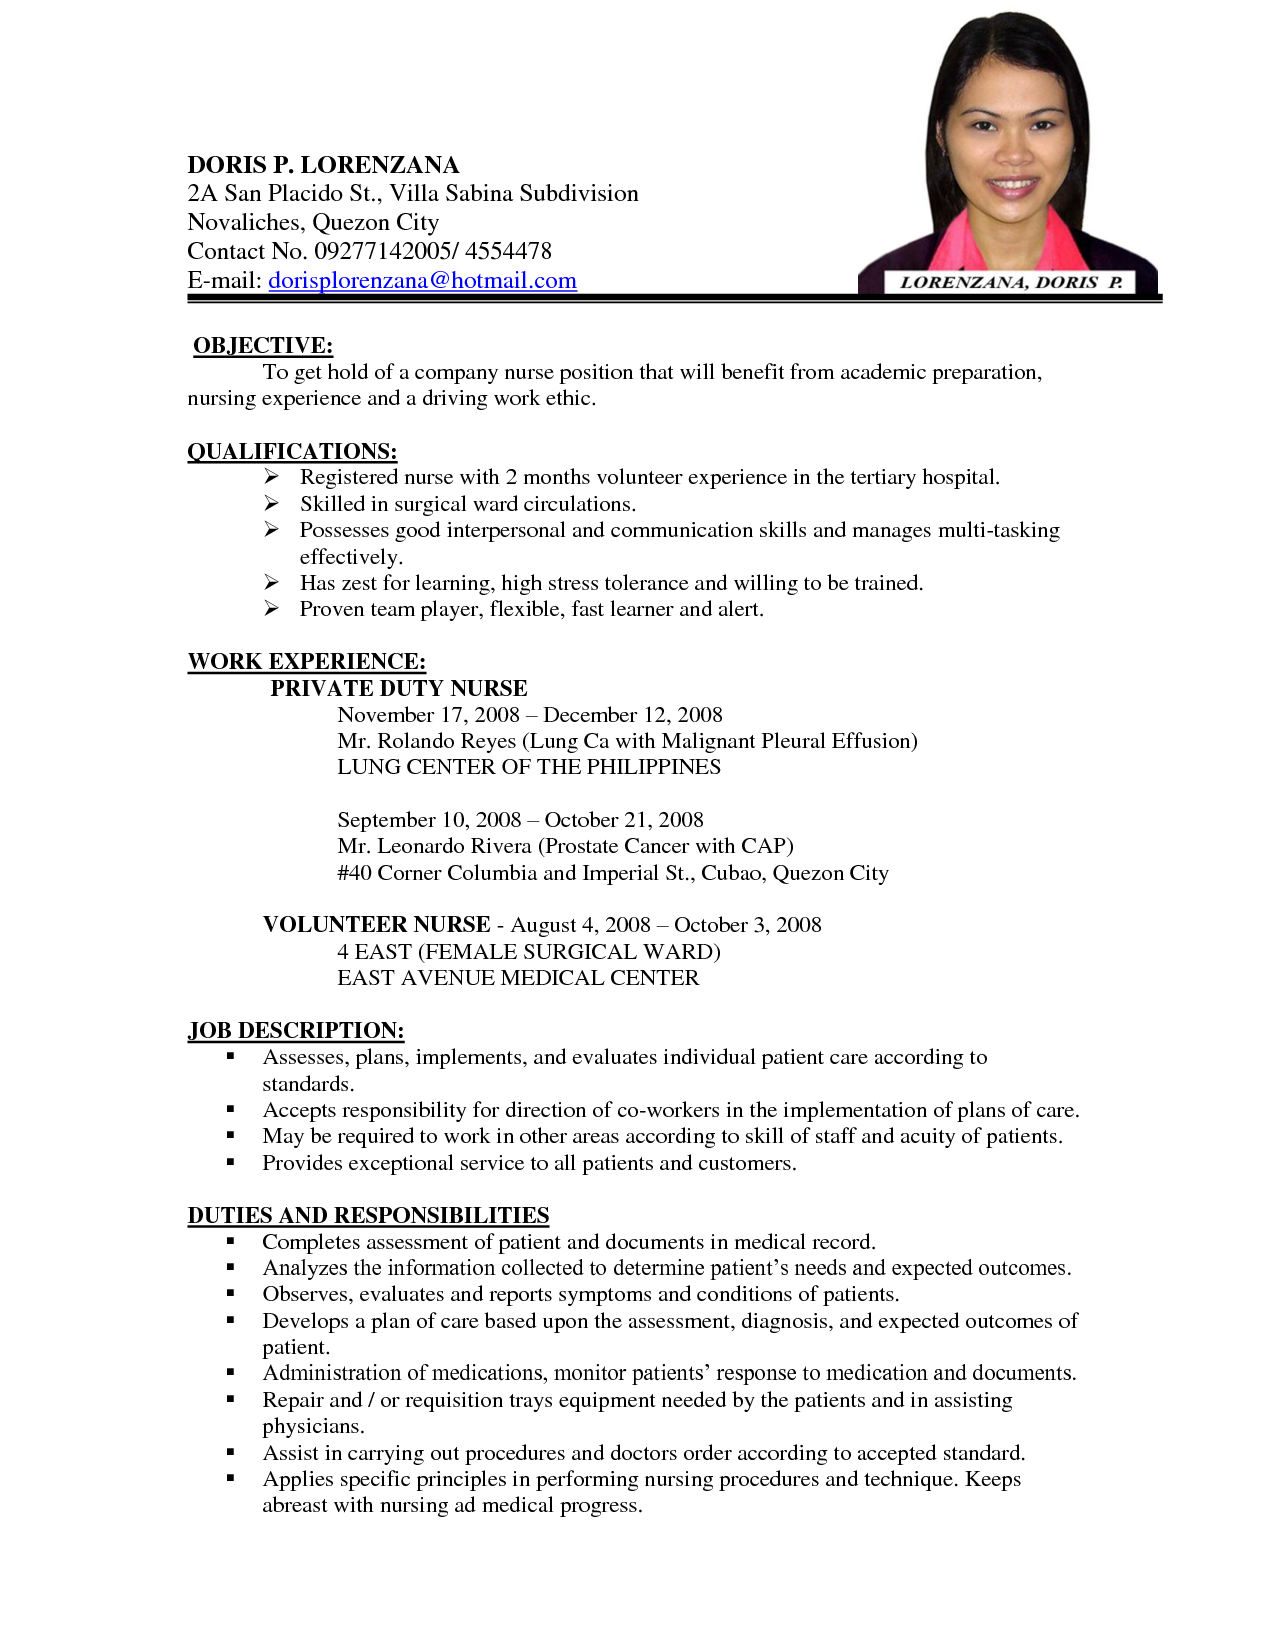 Nursing Curriculum Vitae Examples Google Search Nursing Job